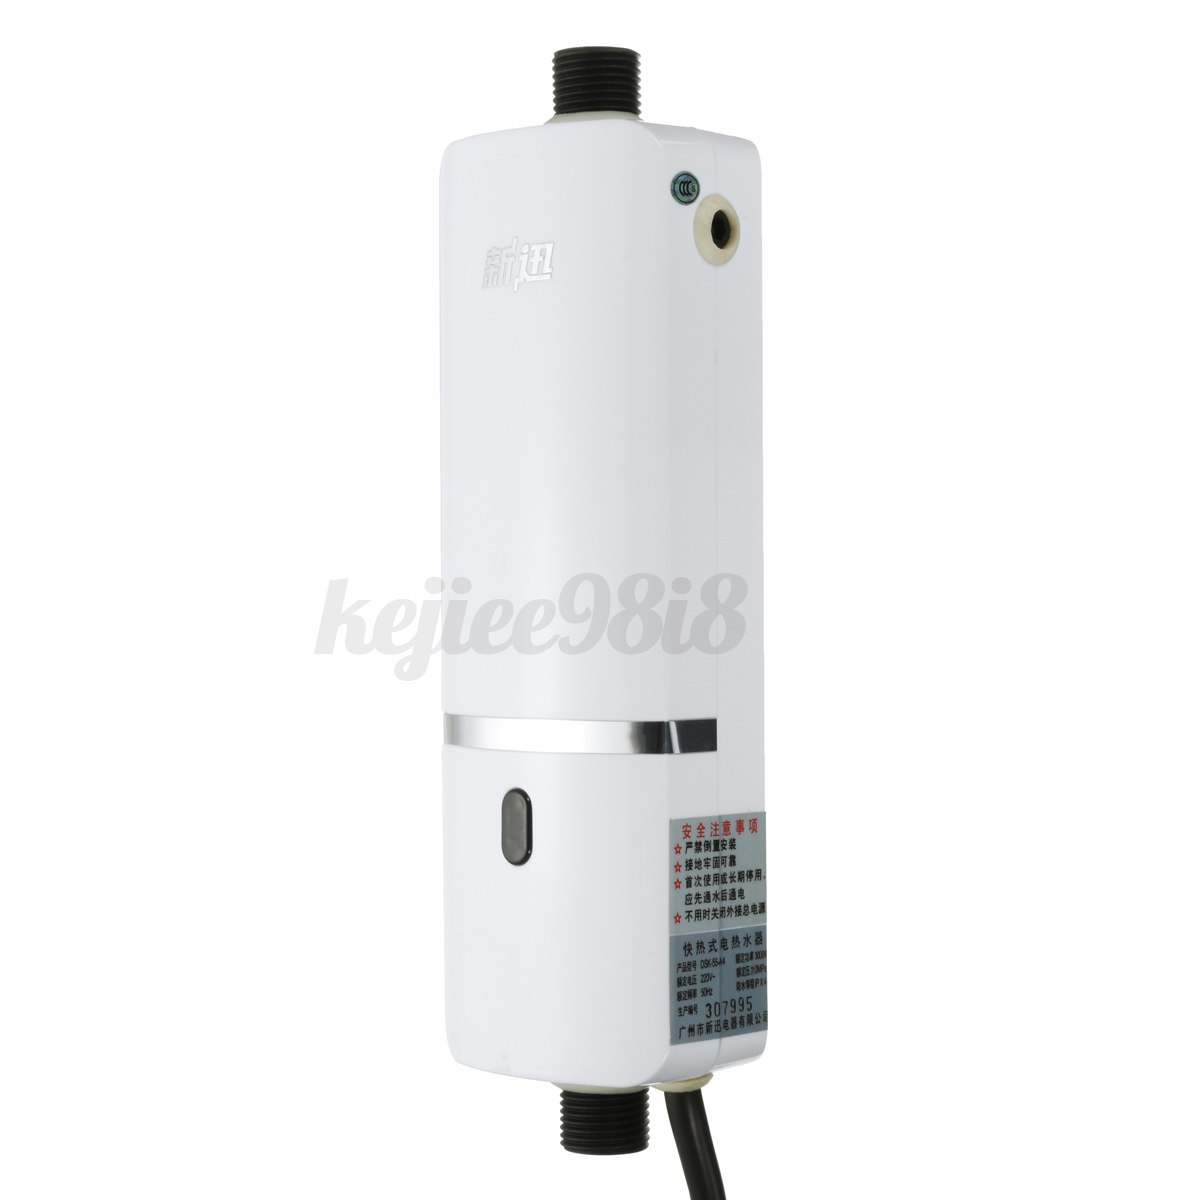 Bathroom kitchen electric instant hot water system for 4 bathroom tankless water heater